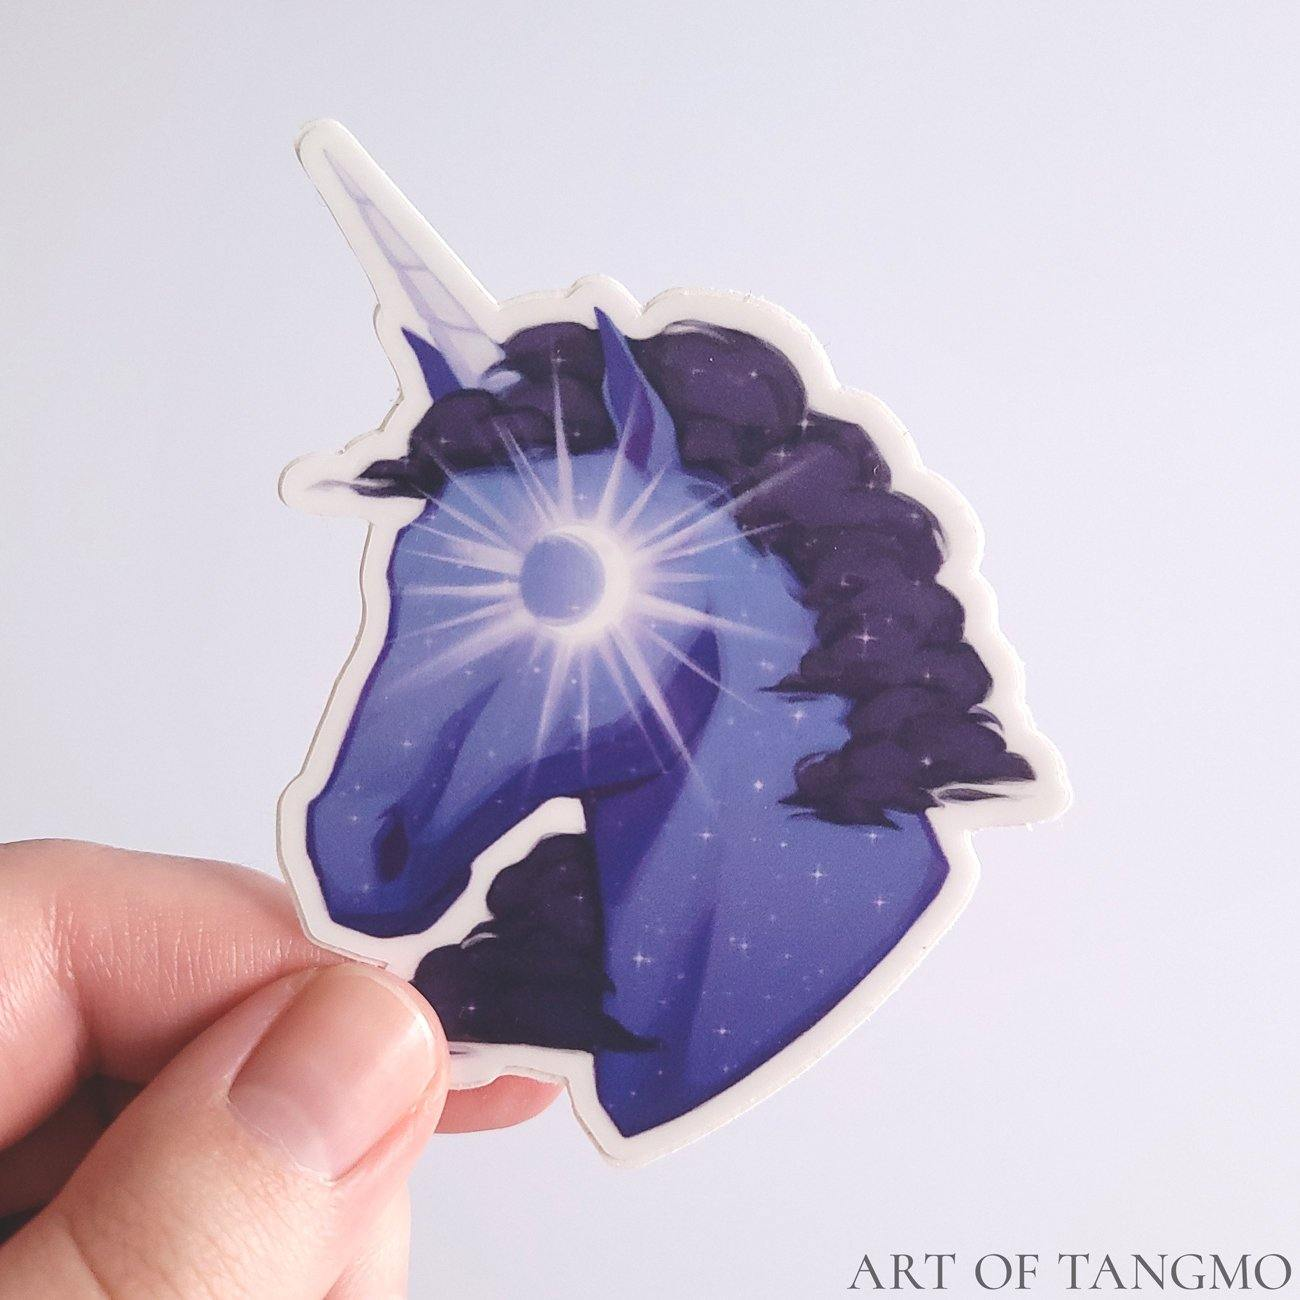 Night Unicorn Vinyl Sticker - Art of Tangmo